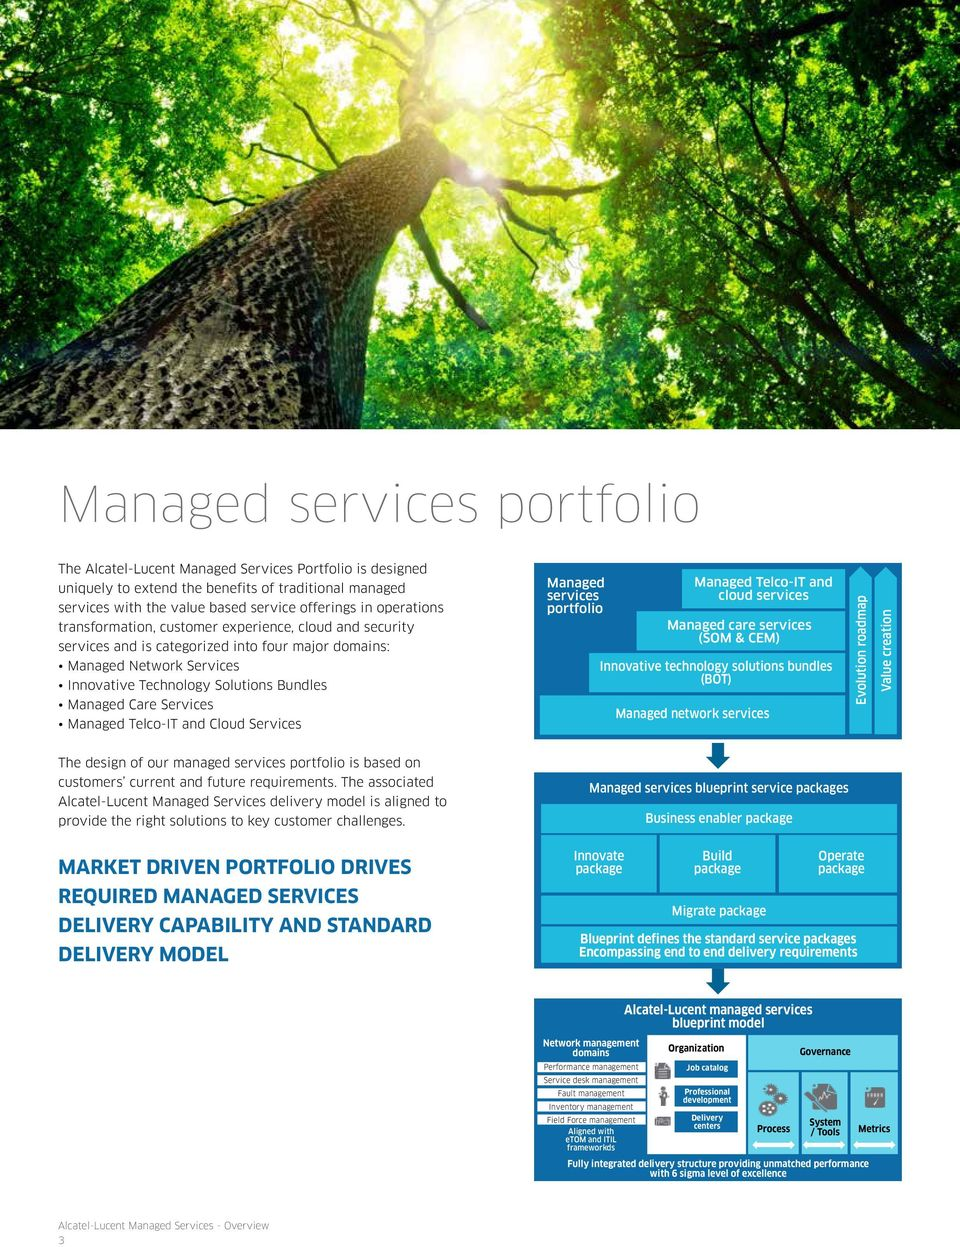 Services Managed Telco-IT and Cloud Services Managed services portfolio Managed Telco-IT and cloud services Managed care services (SOM & CEM) Innovative technology solutions bundles (BOT) Managed